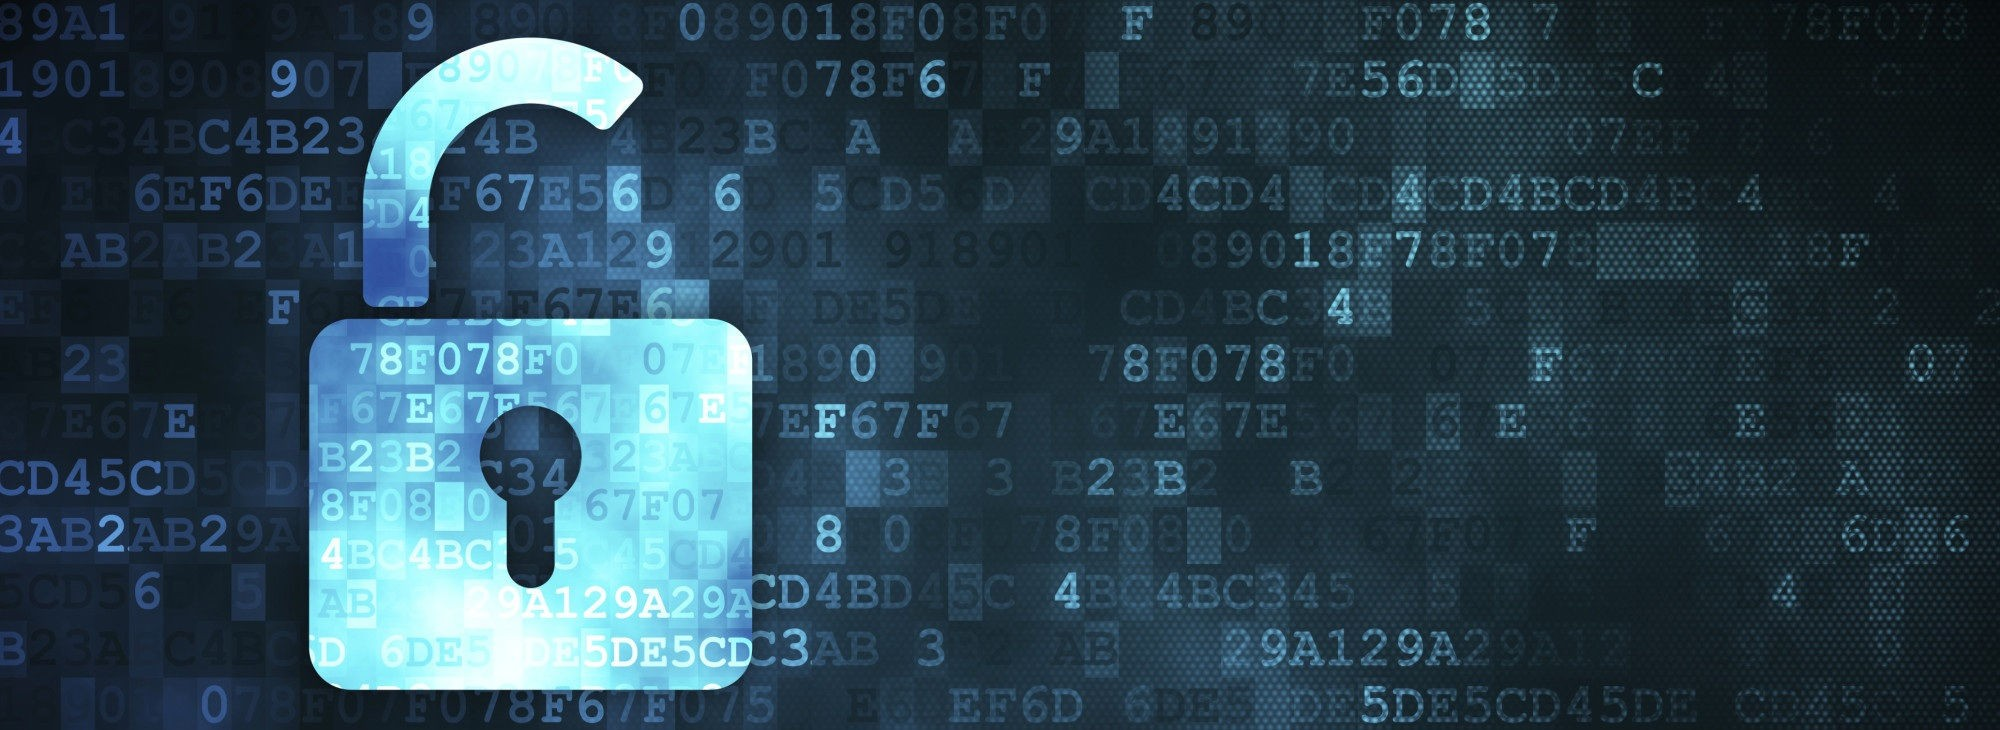 Encrypted-and-Protected-Media-Drives-Data-Recovery